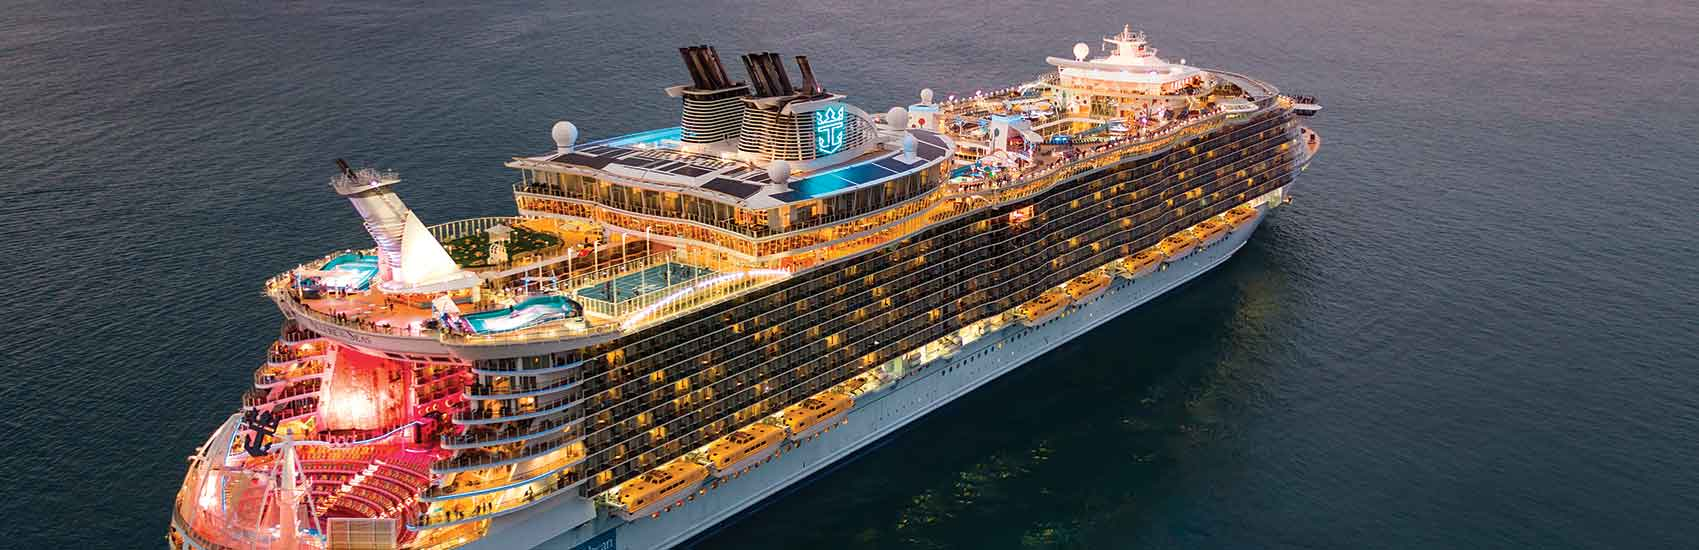 Direct Deal with Royal Caribbean